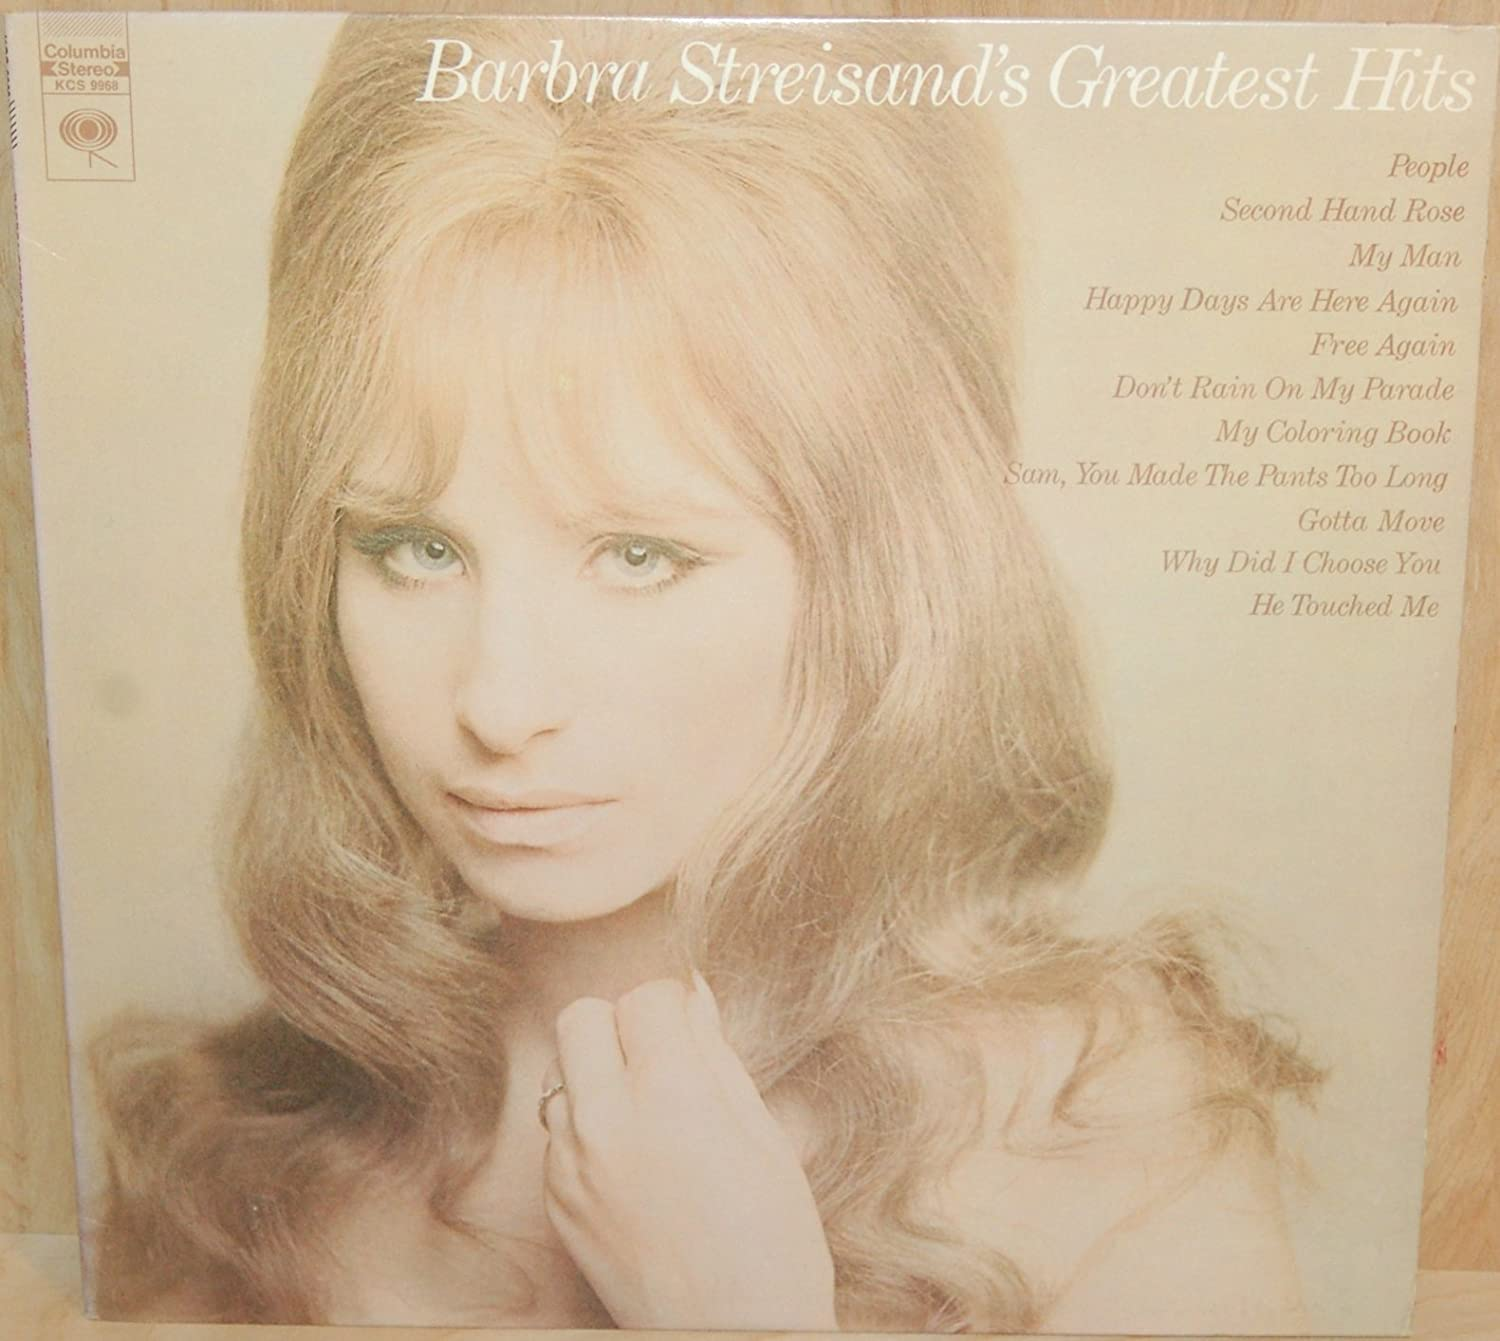 The coloring book barbra streisand - The Coloring Book Barbra Streisand 18